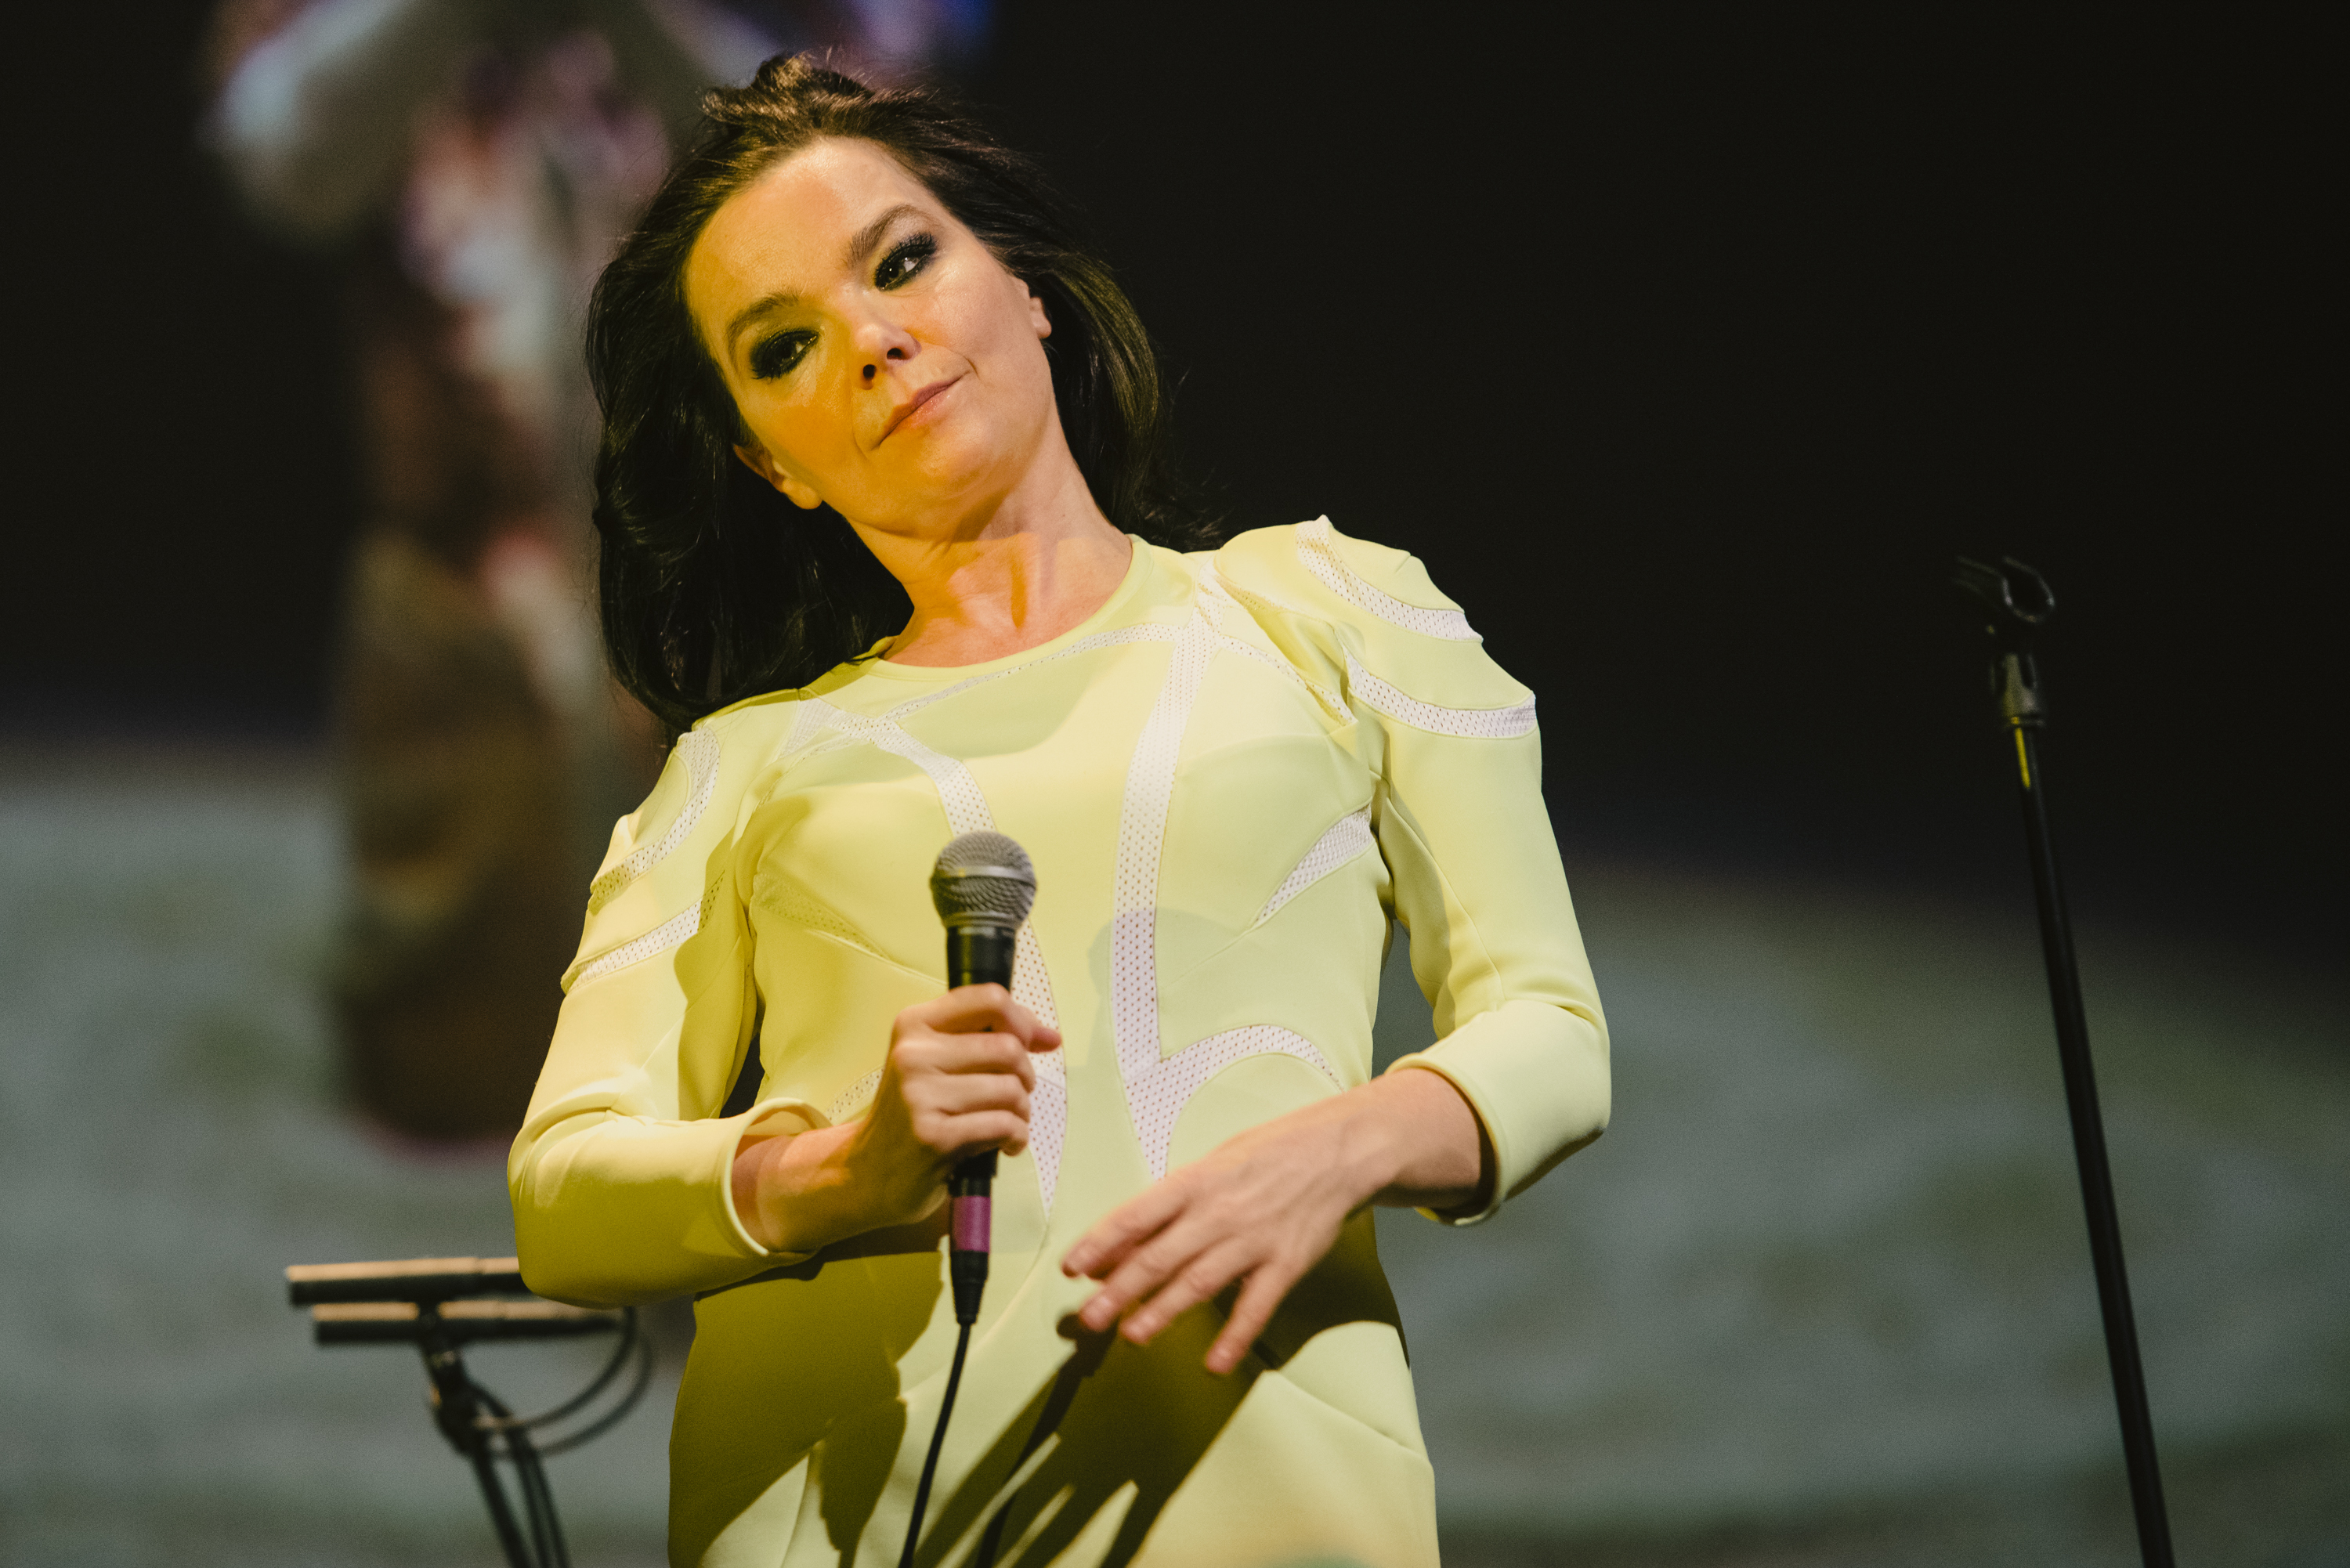 REYKJAVIK, ICELAND - MARCH 18:  Bjork performs at the 'Stopp - Let's Protect the Park' nature benefit concert at Harpa Concer